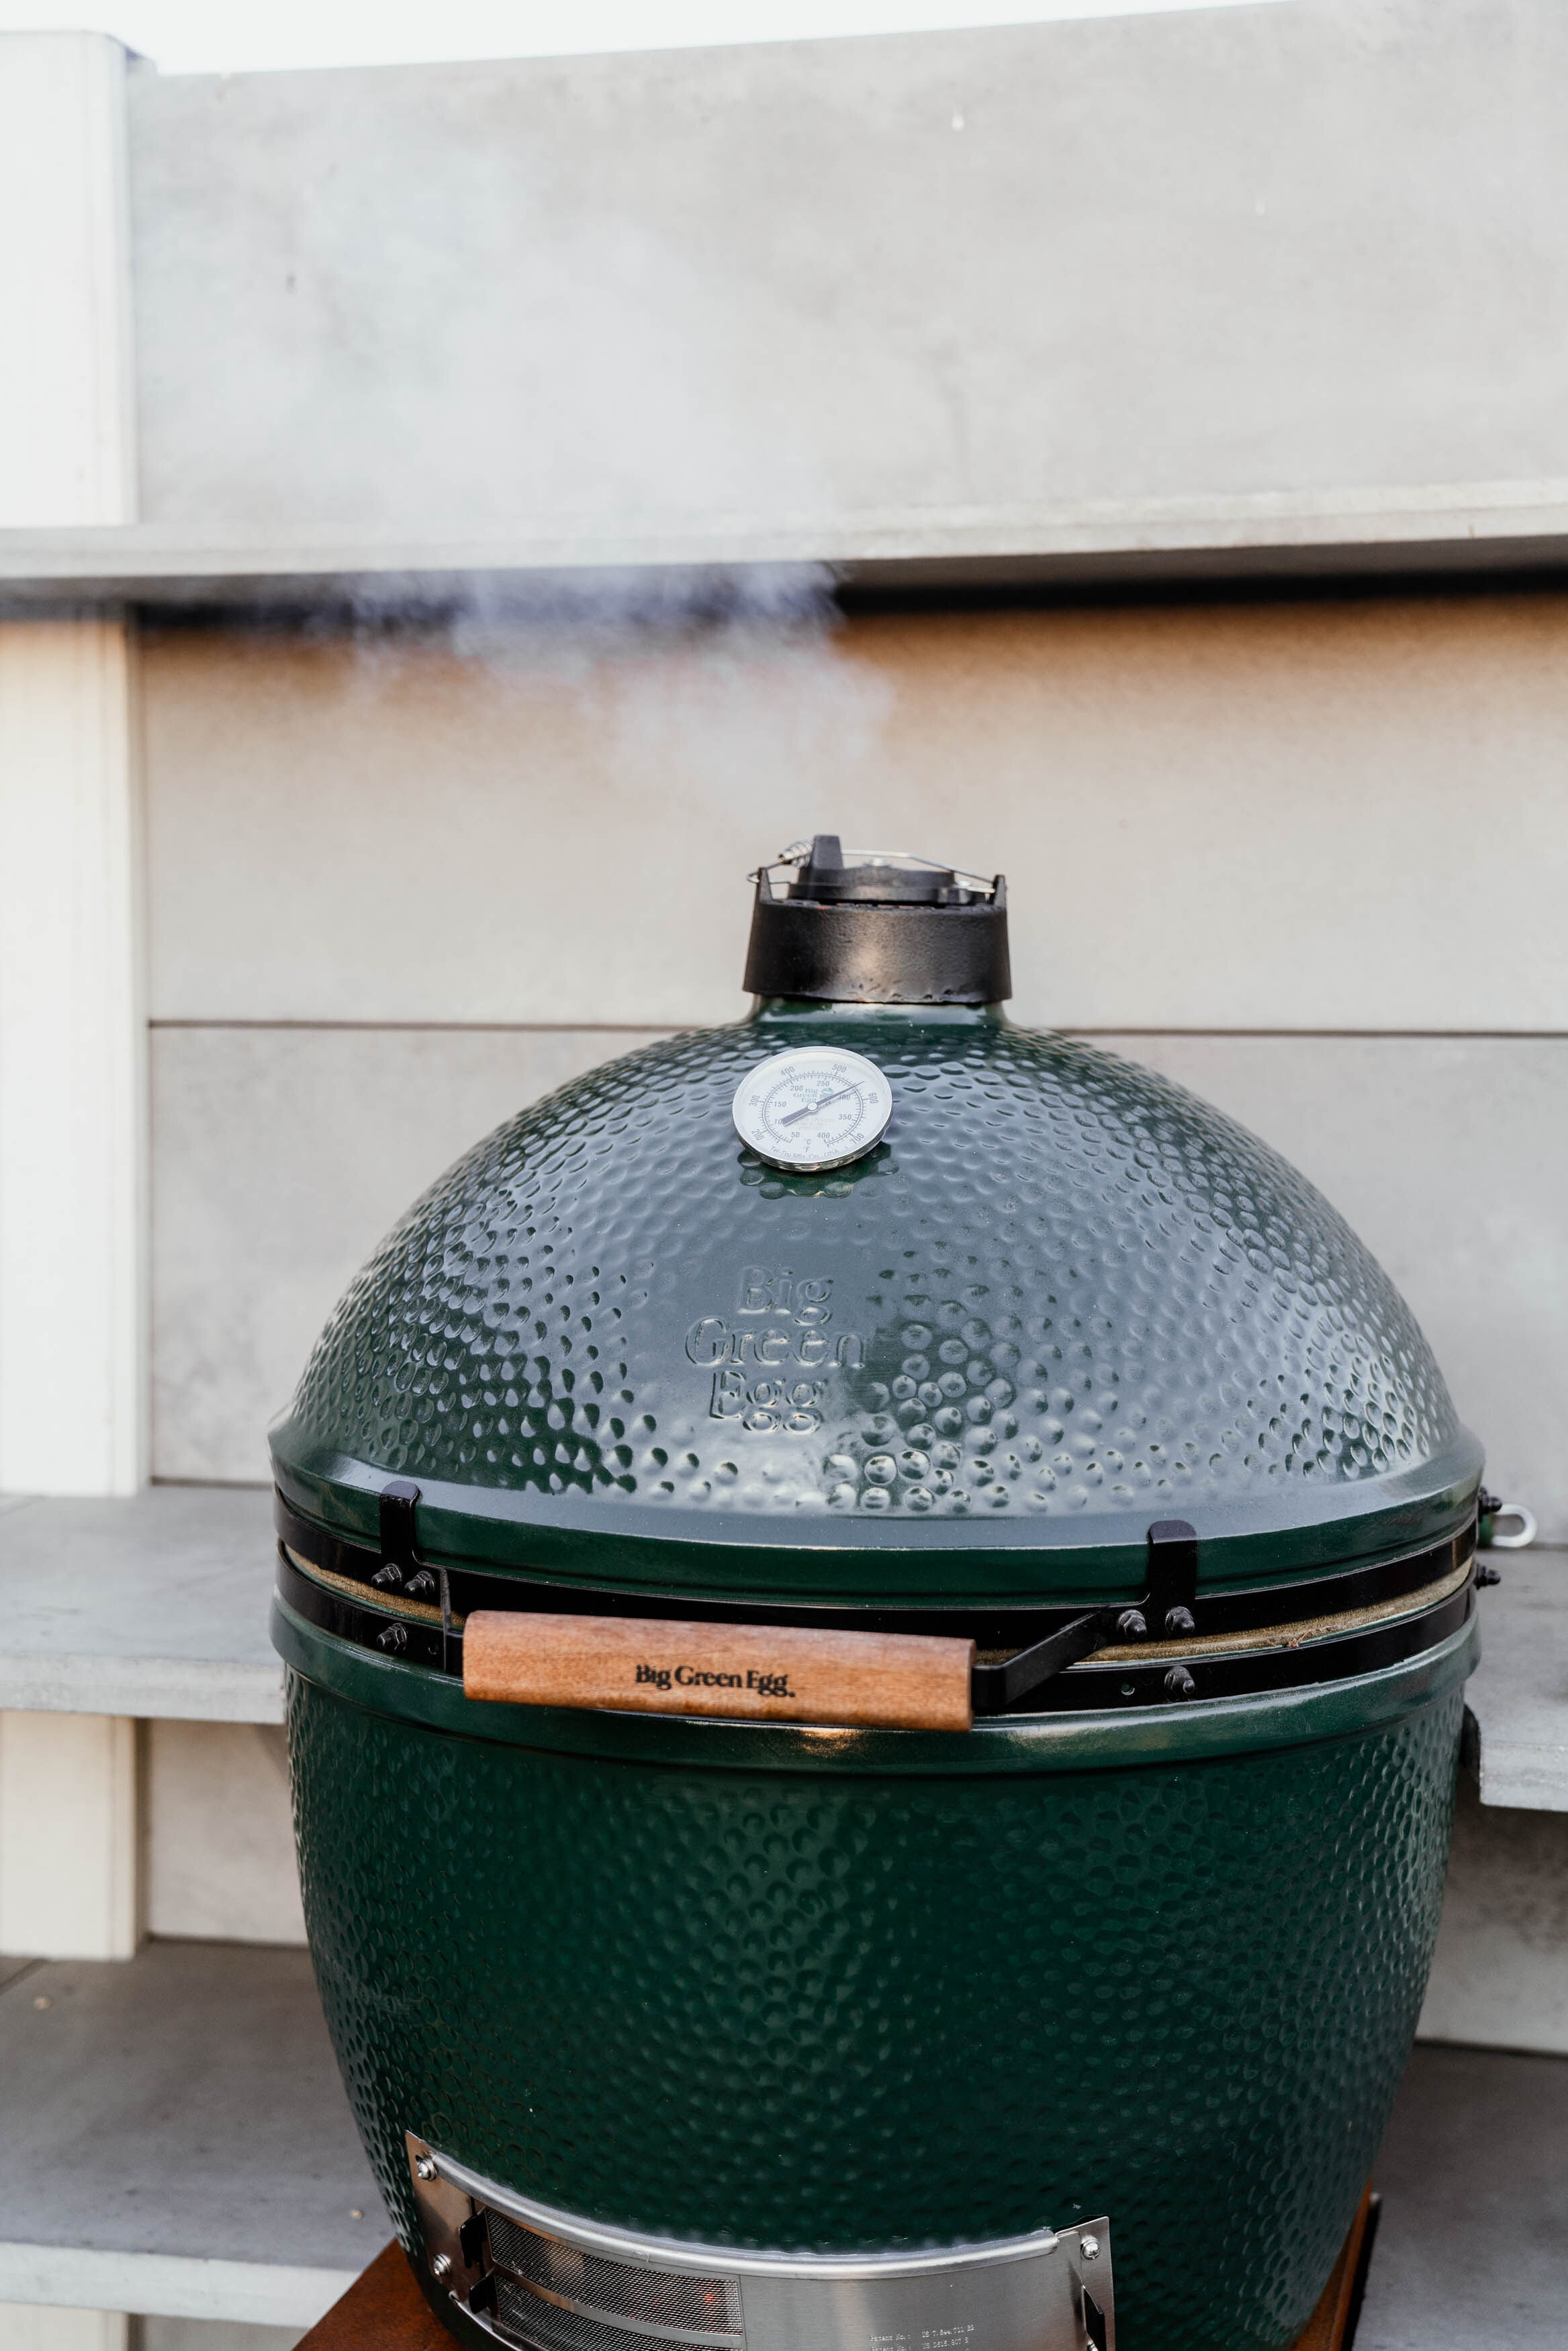 The Big Green Egg , a ceramic kamado-style charcoal grill, Installed by  WWOO .